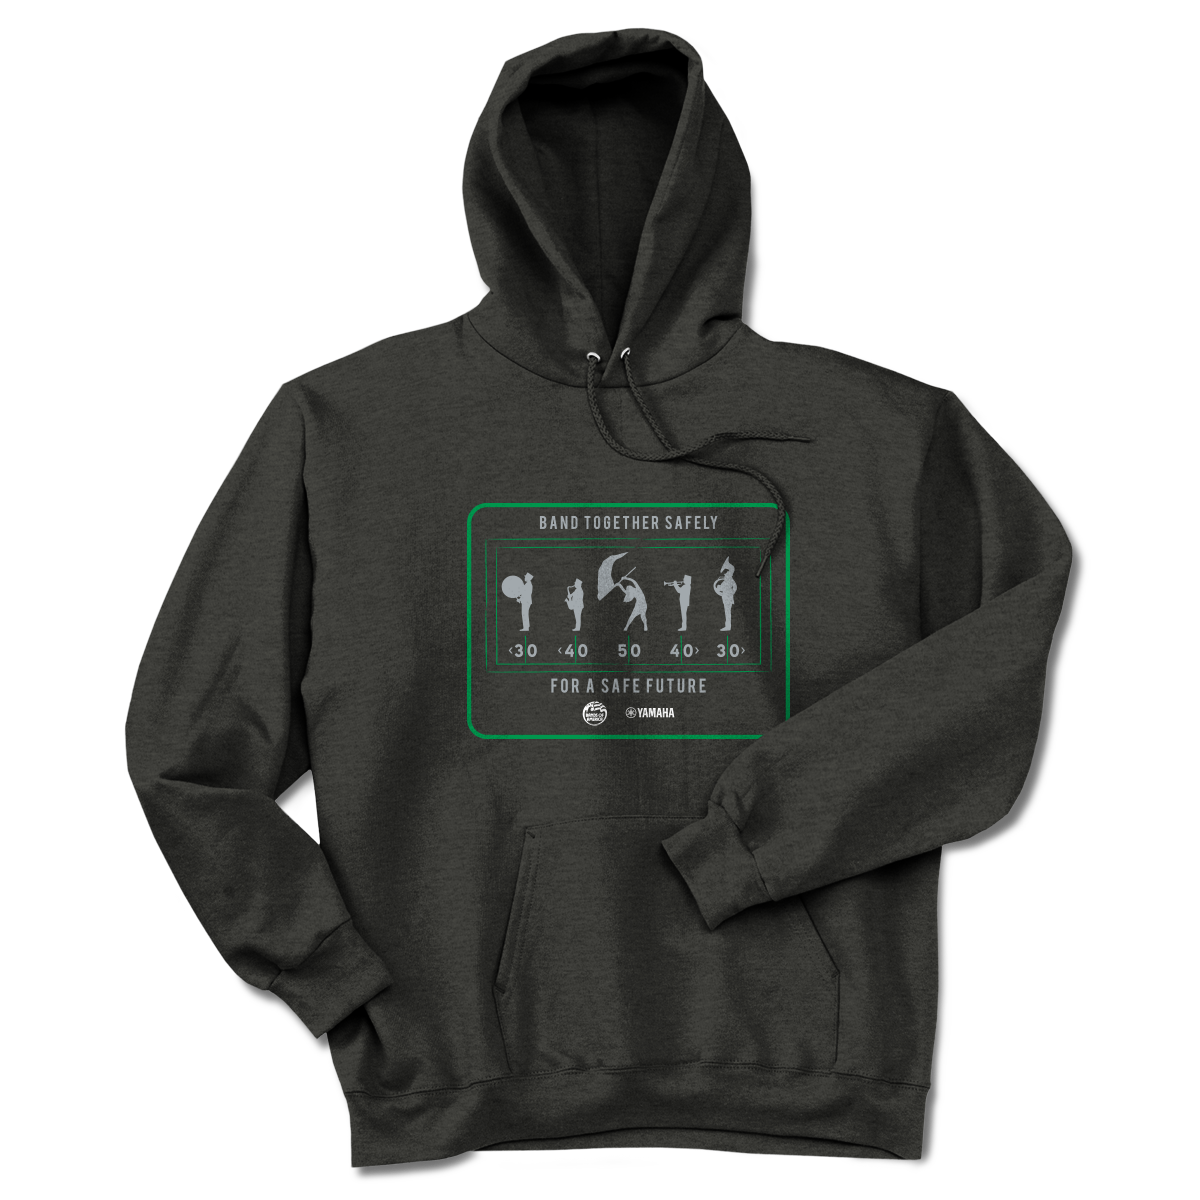 Limited Edition: Band Together Safely Hoodie